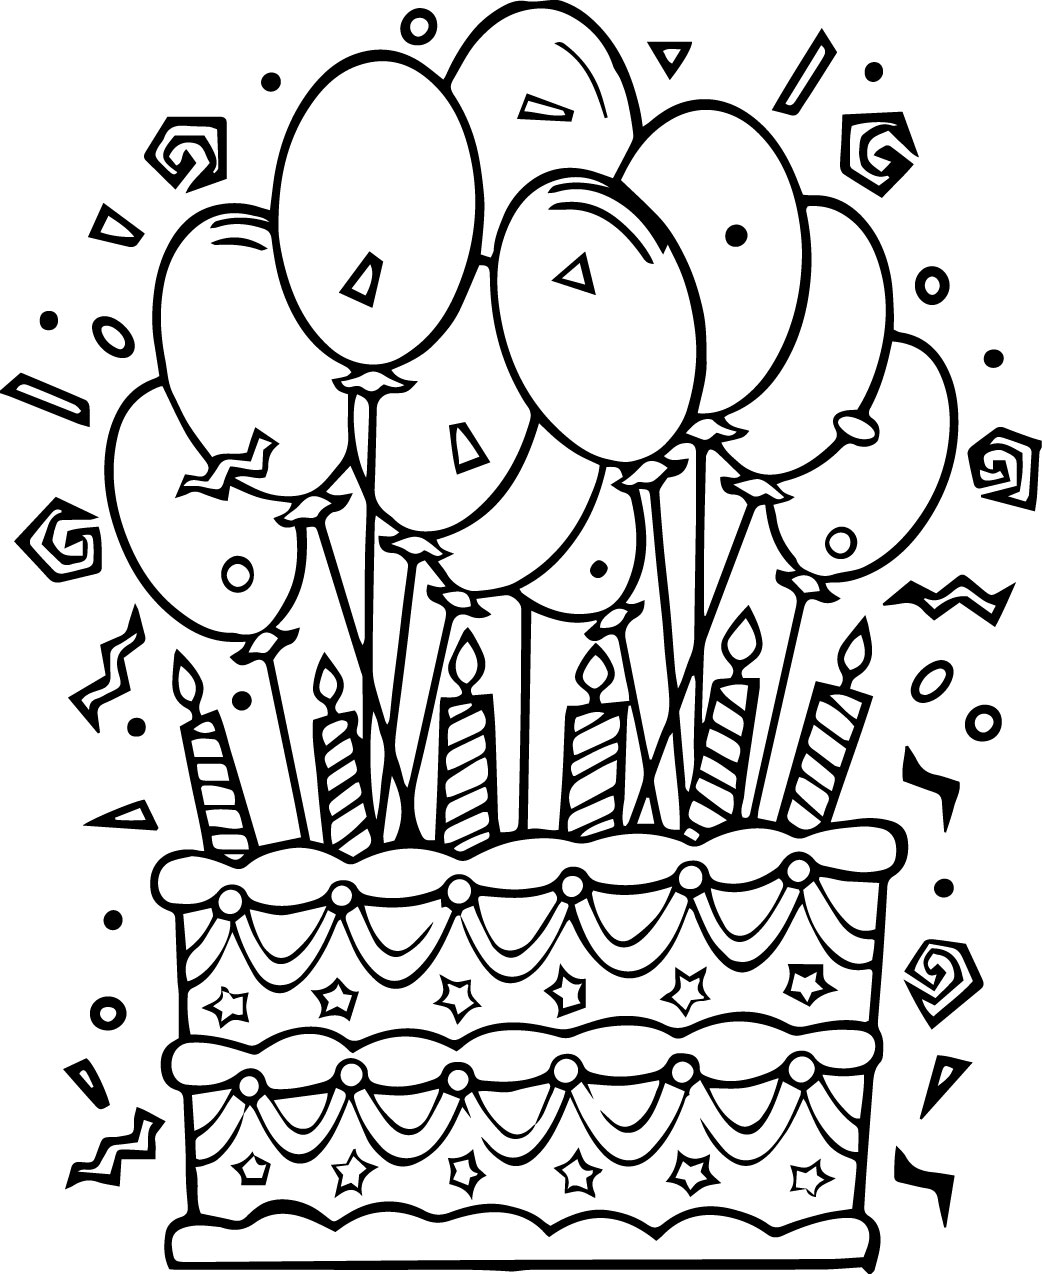 birthday cake coloring ; birthday-cake-coloring-page-03